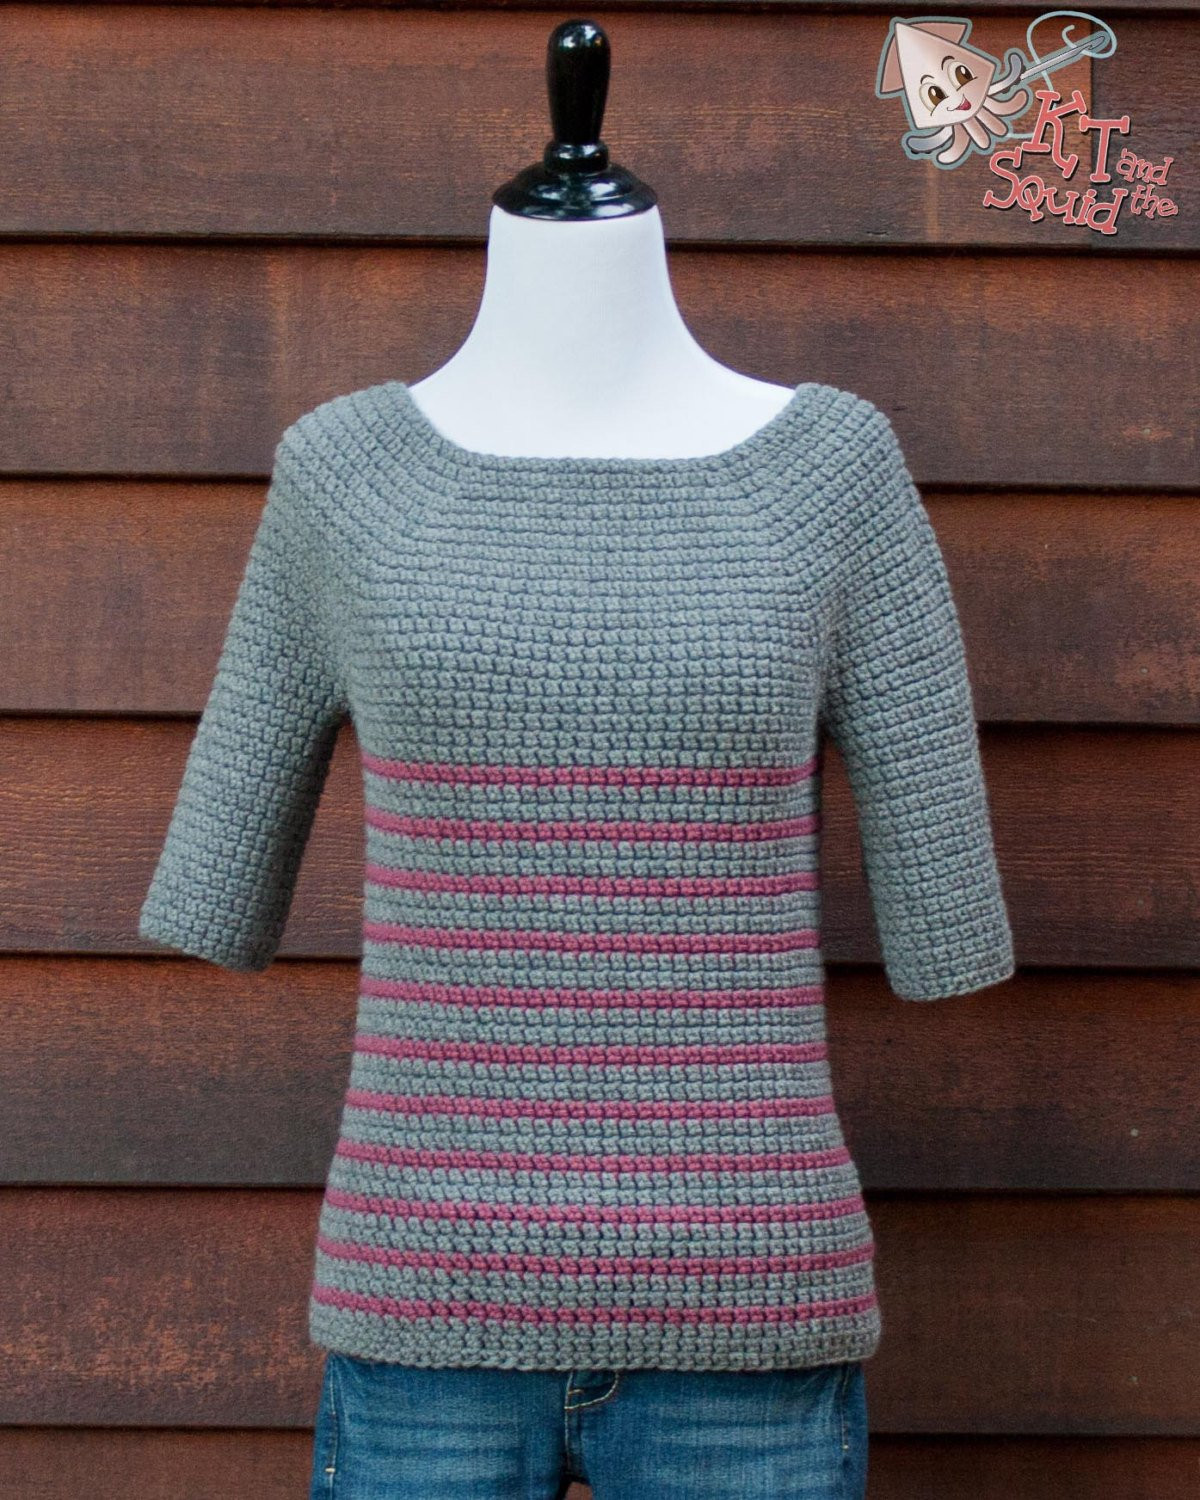 Crochet Pullover Sweater Pattern Awesome Crochet Sweater Pattern Women S Sweater Pattern Crochet Of Beautiful 43 Ideas Crochet Pullover Sweater Pattern